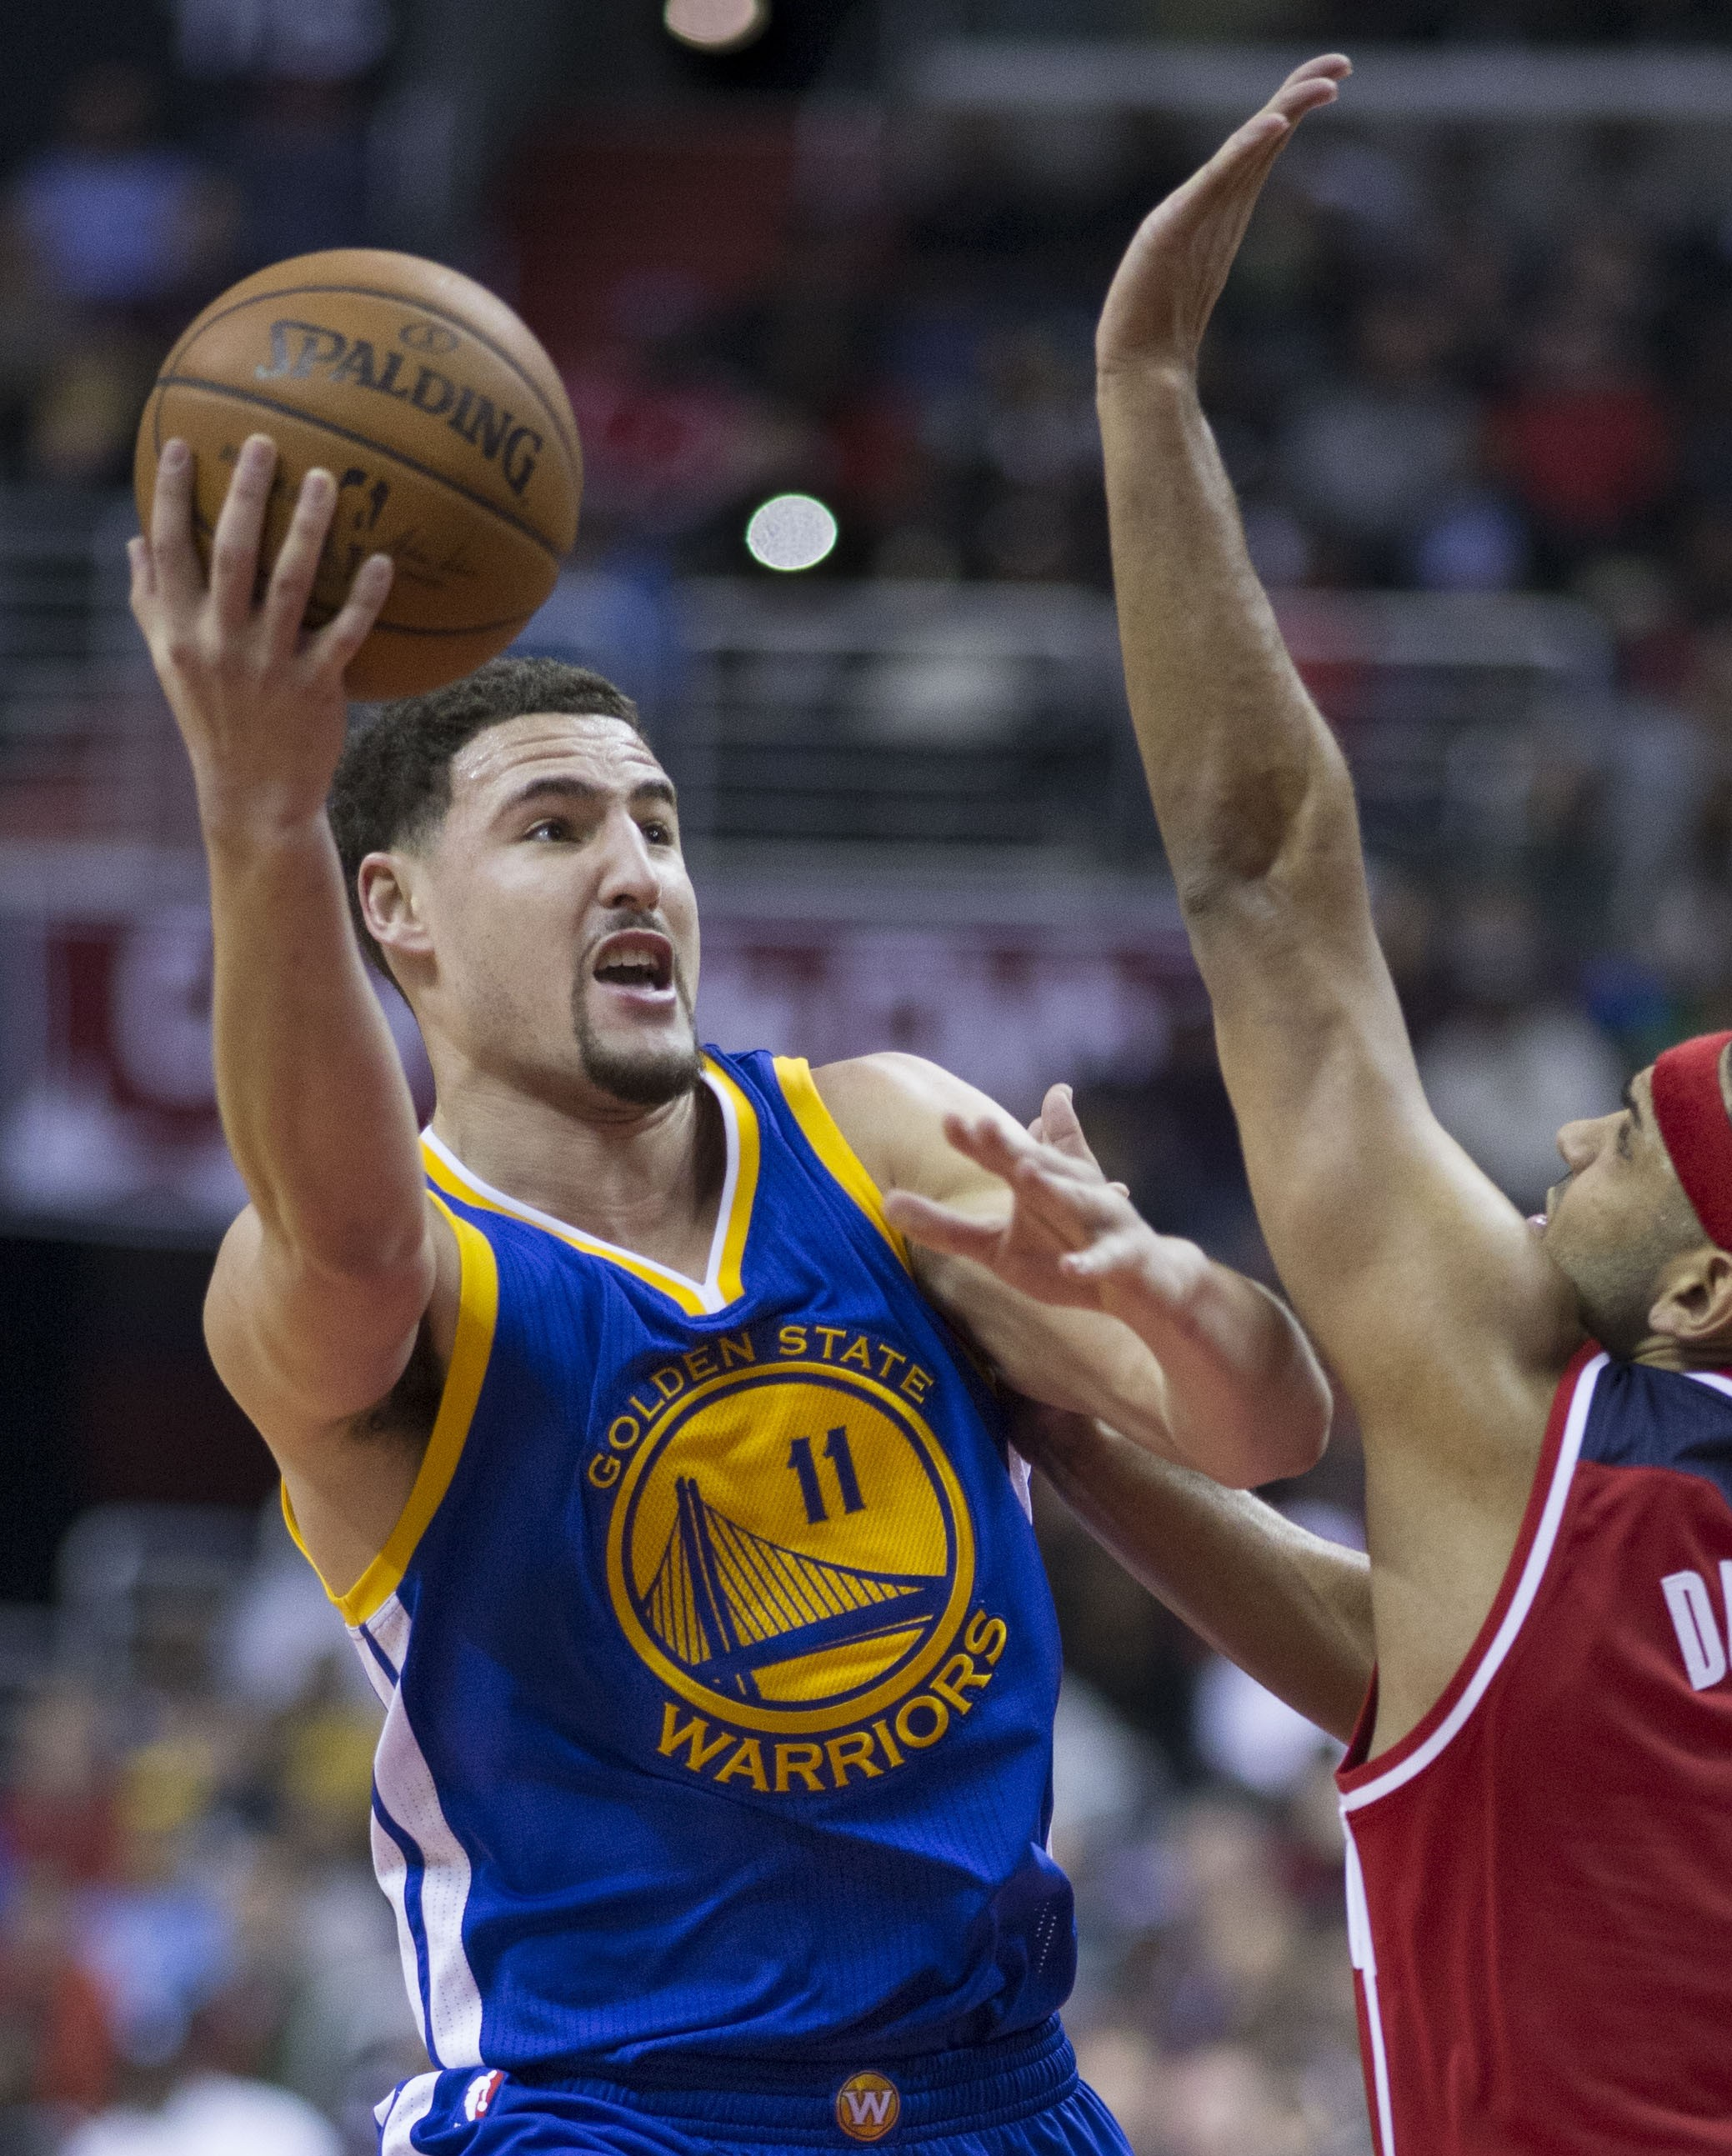 Former Wsu Star Klay Thompson To Play On The U S Olympic